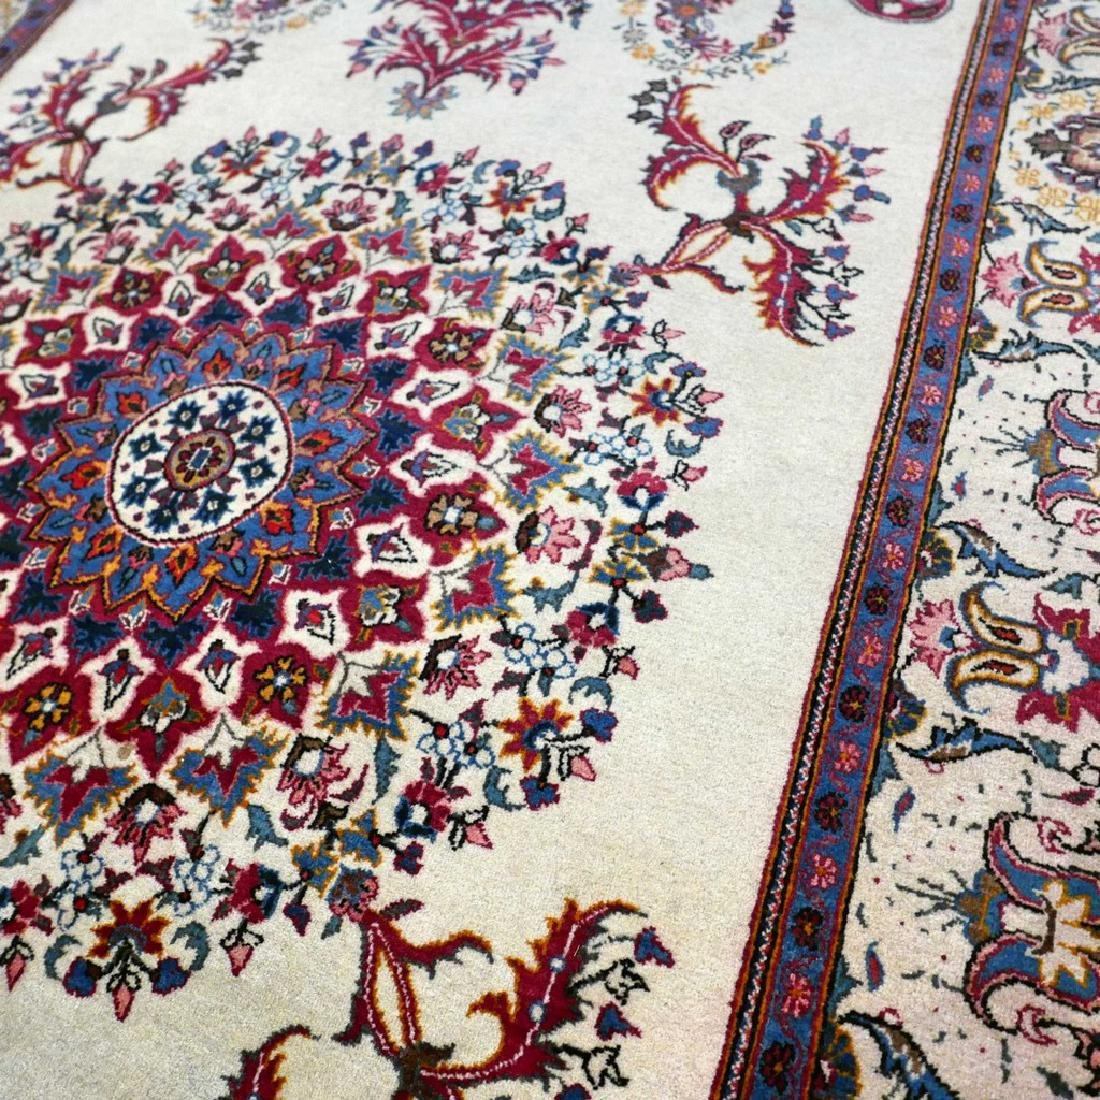 Keshan With Special Design Rug 7x4.4 - 4